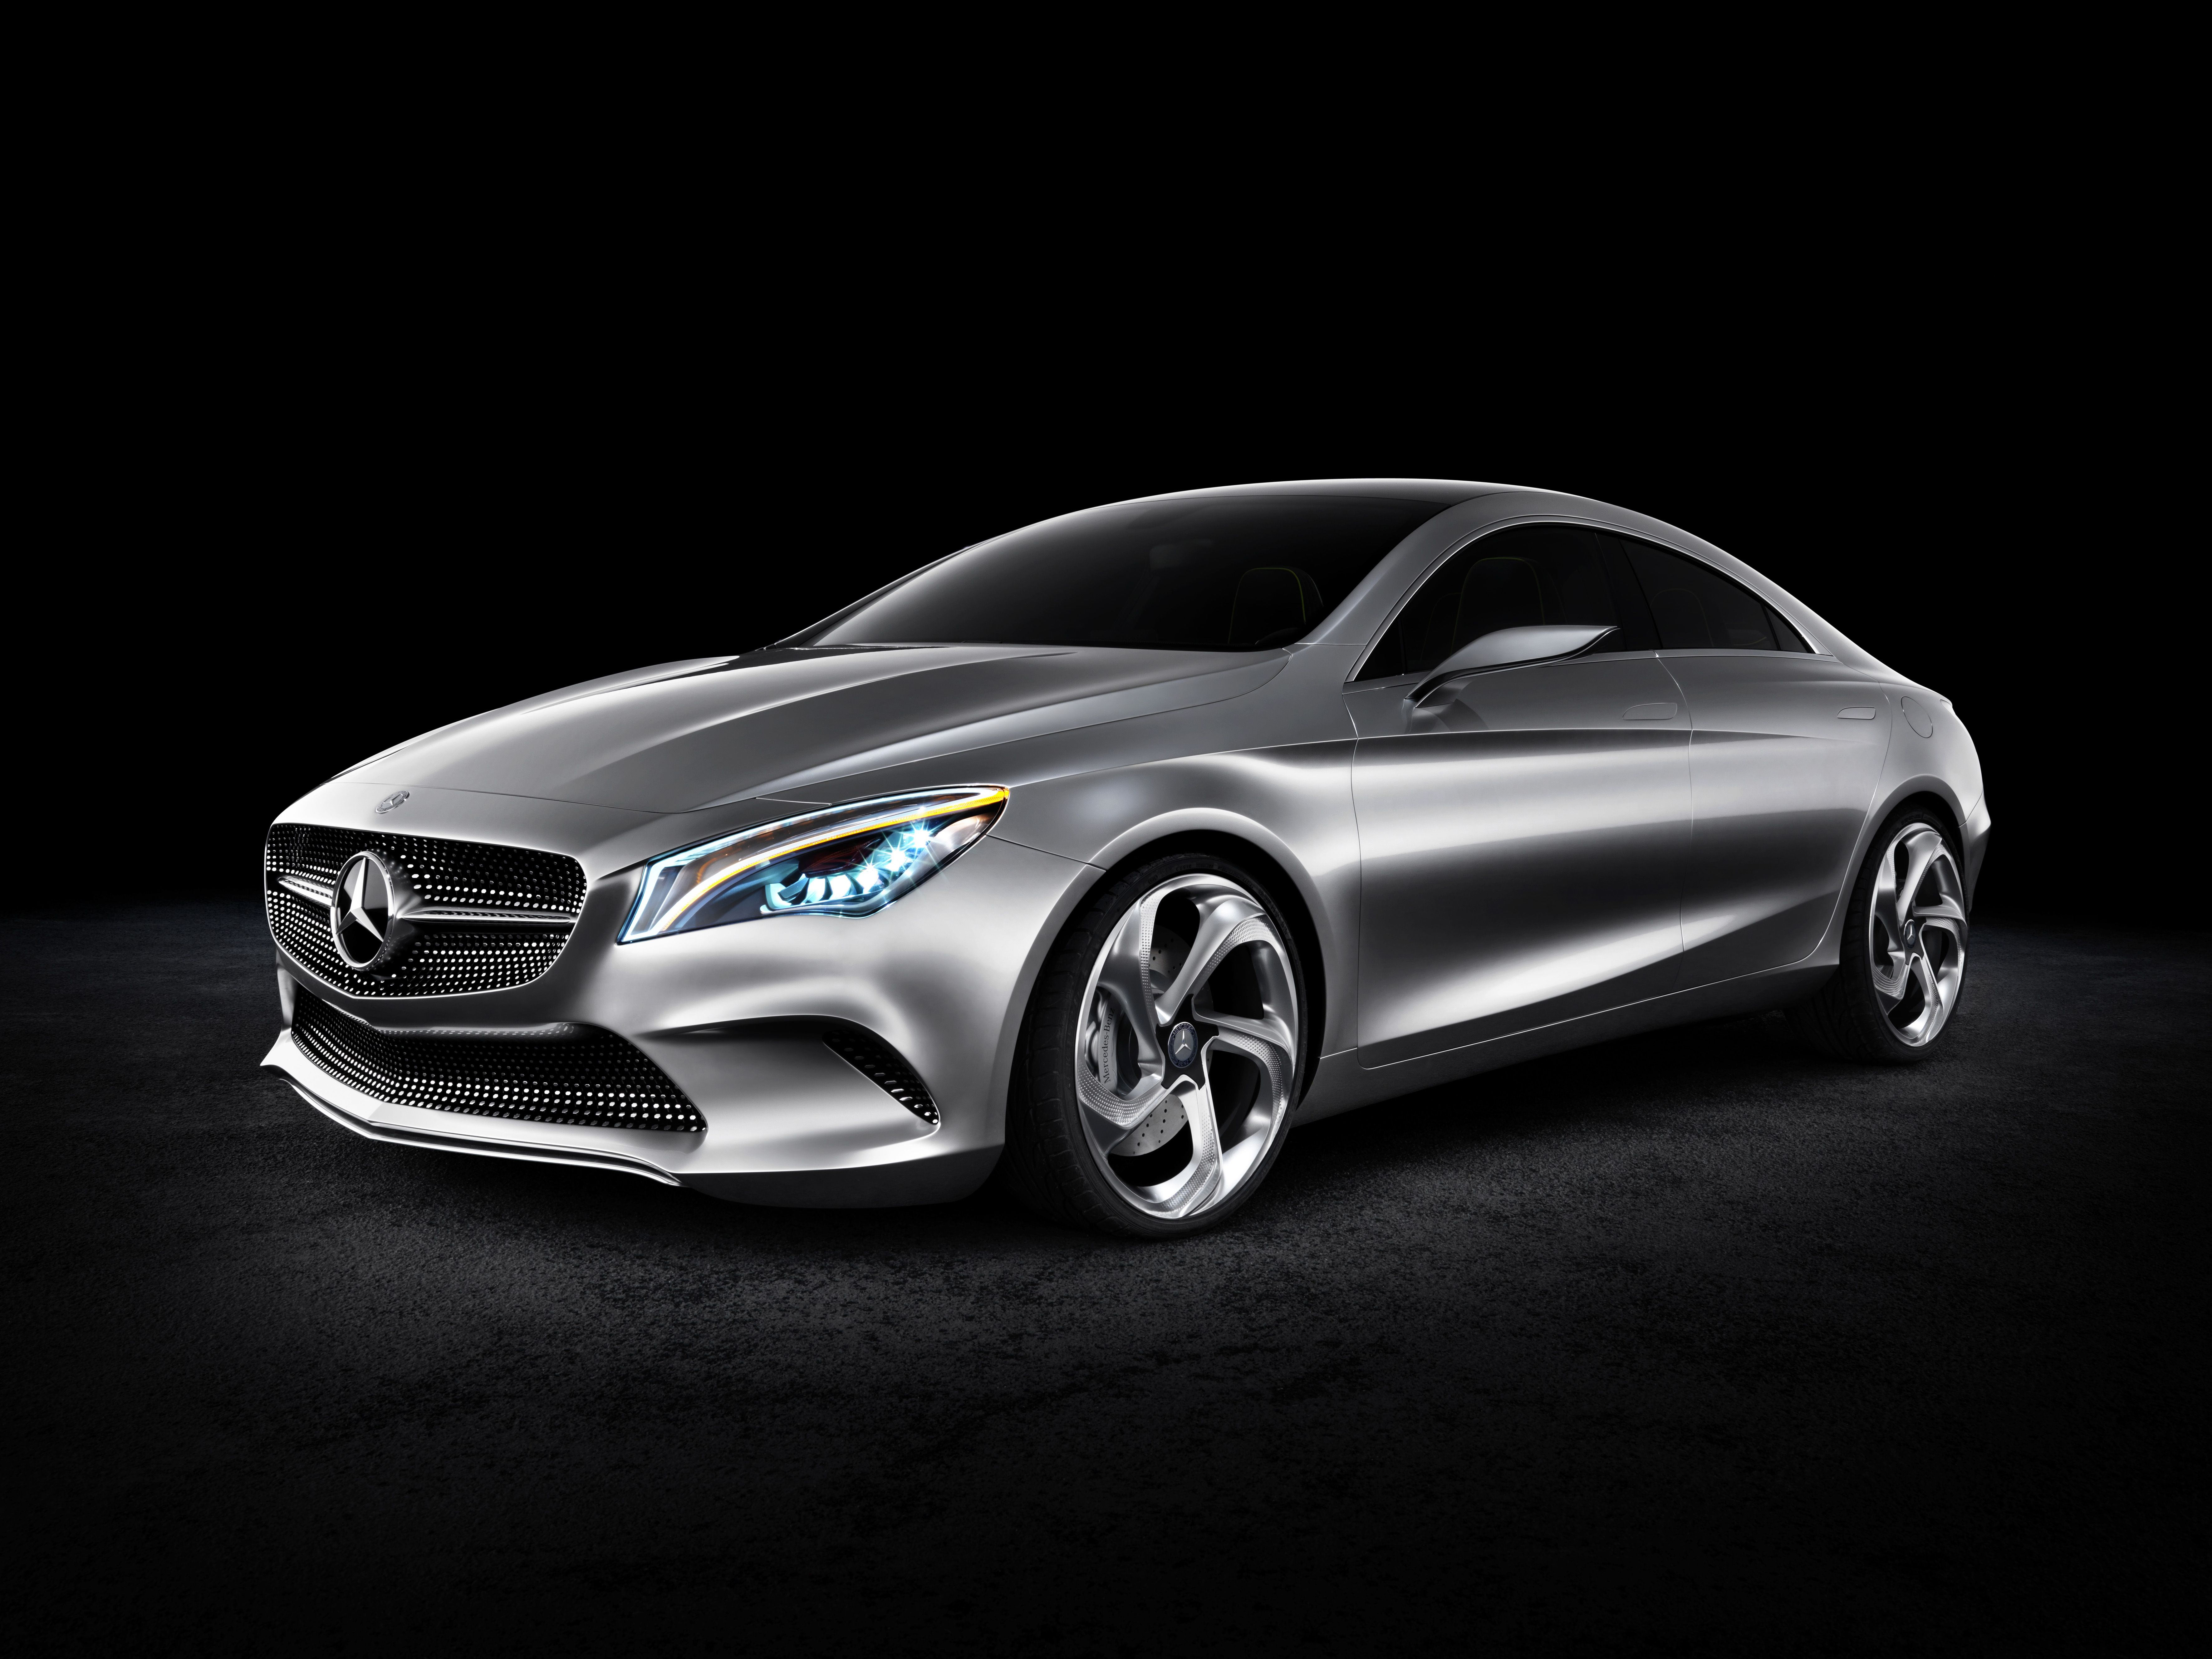 mercedes benz comercial valencia with images mercedes benz coupe mercedes concept benz mercedes benz comercial valencia with images mercedes benz coupe mercedes concept benz